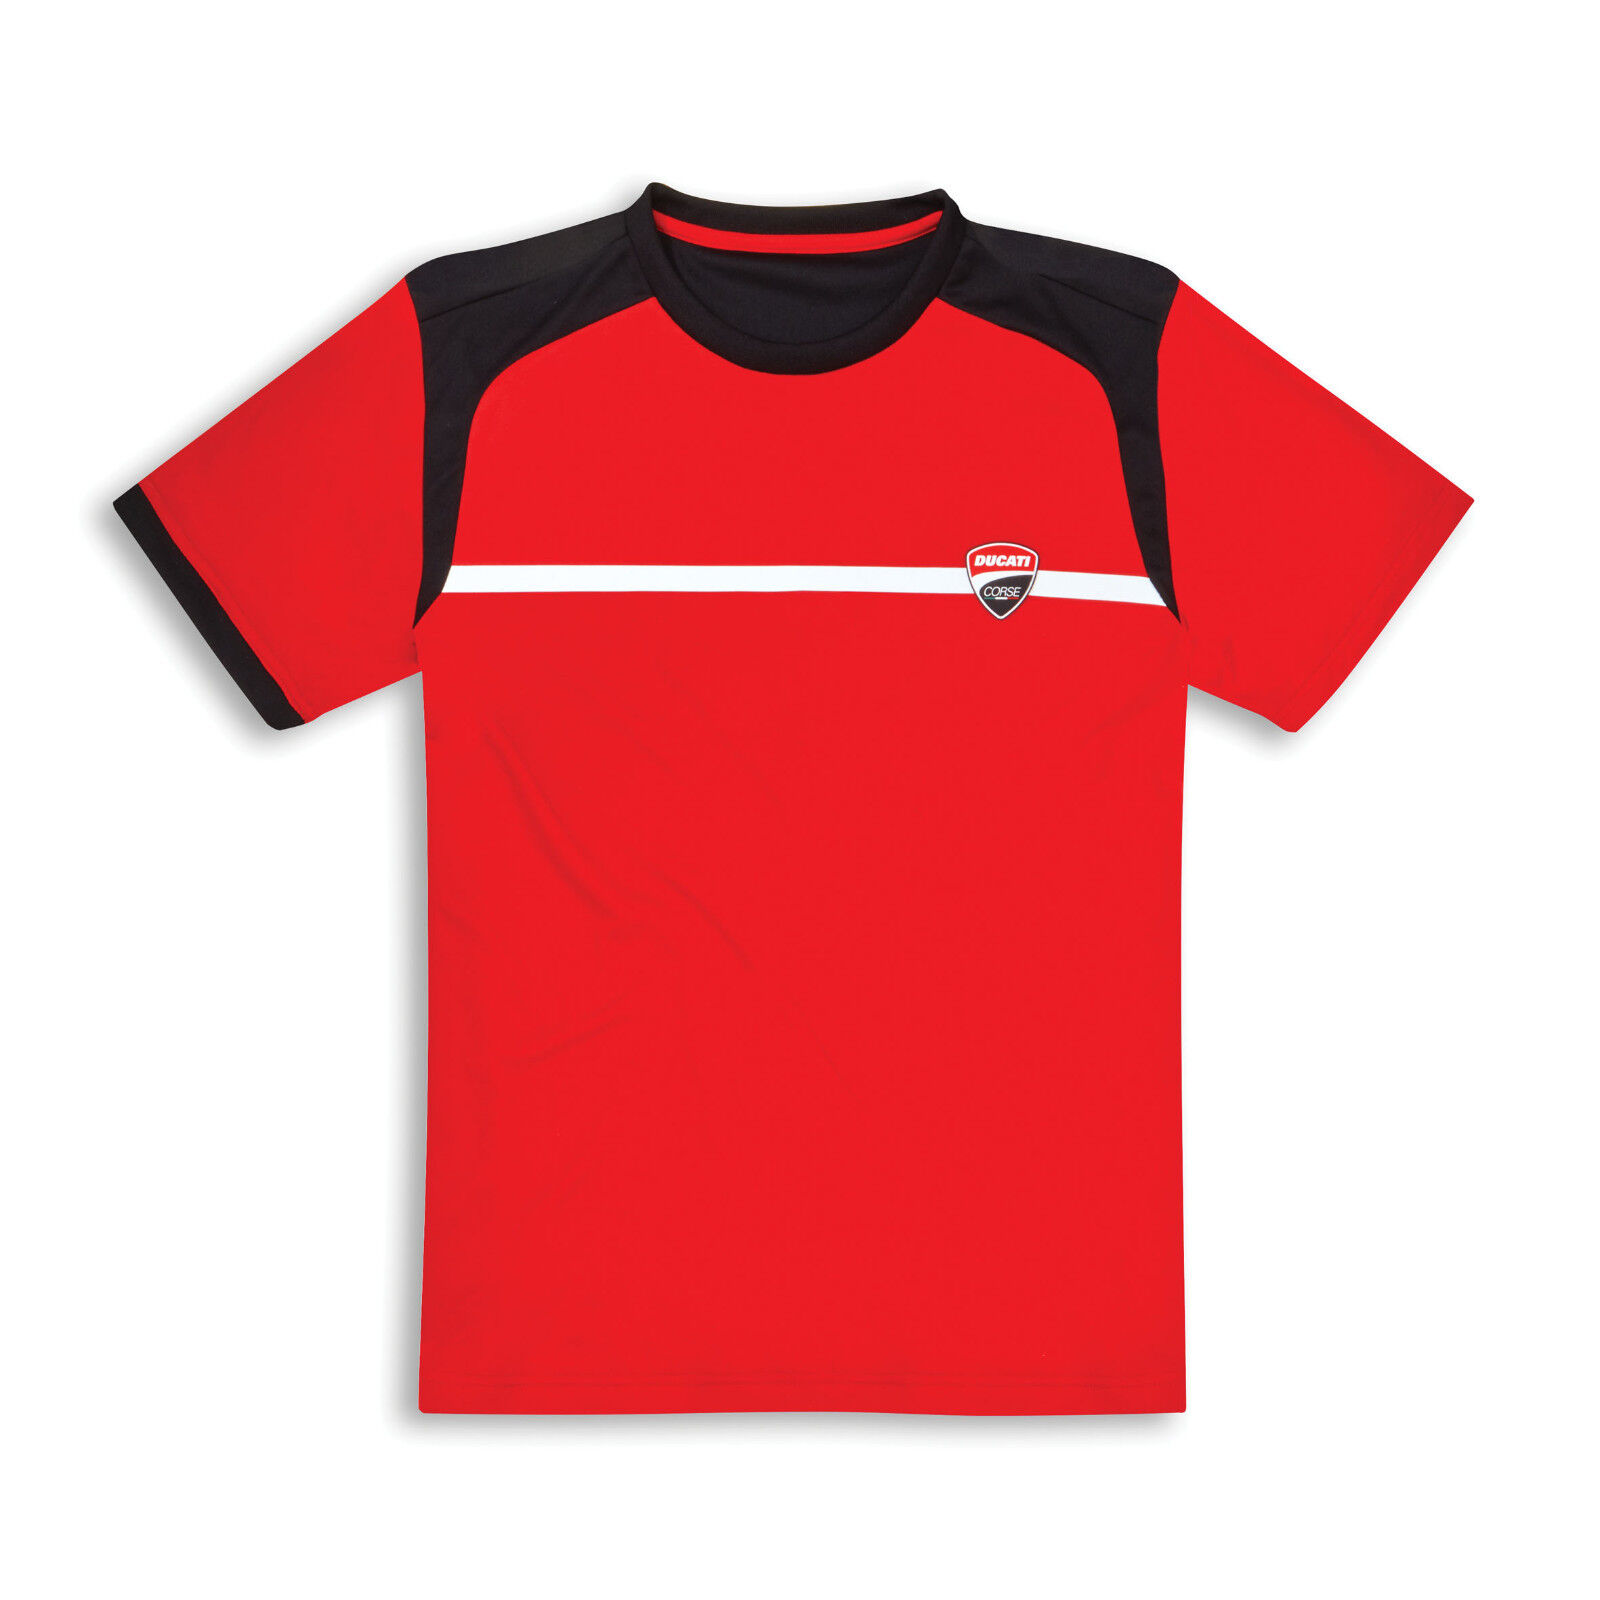 DUCATI CORSE POWER 19 RED T-SHIRT XX-LARGE 987699057